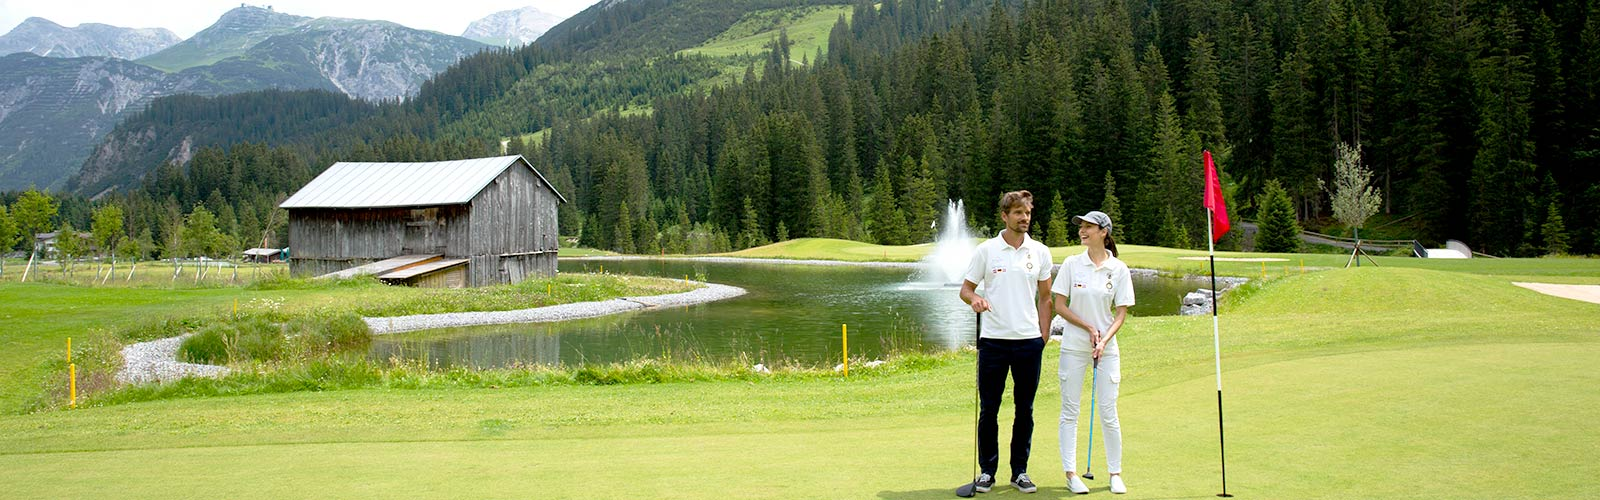 Golf and Gourmet Arlberg